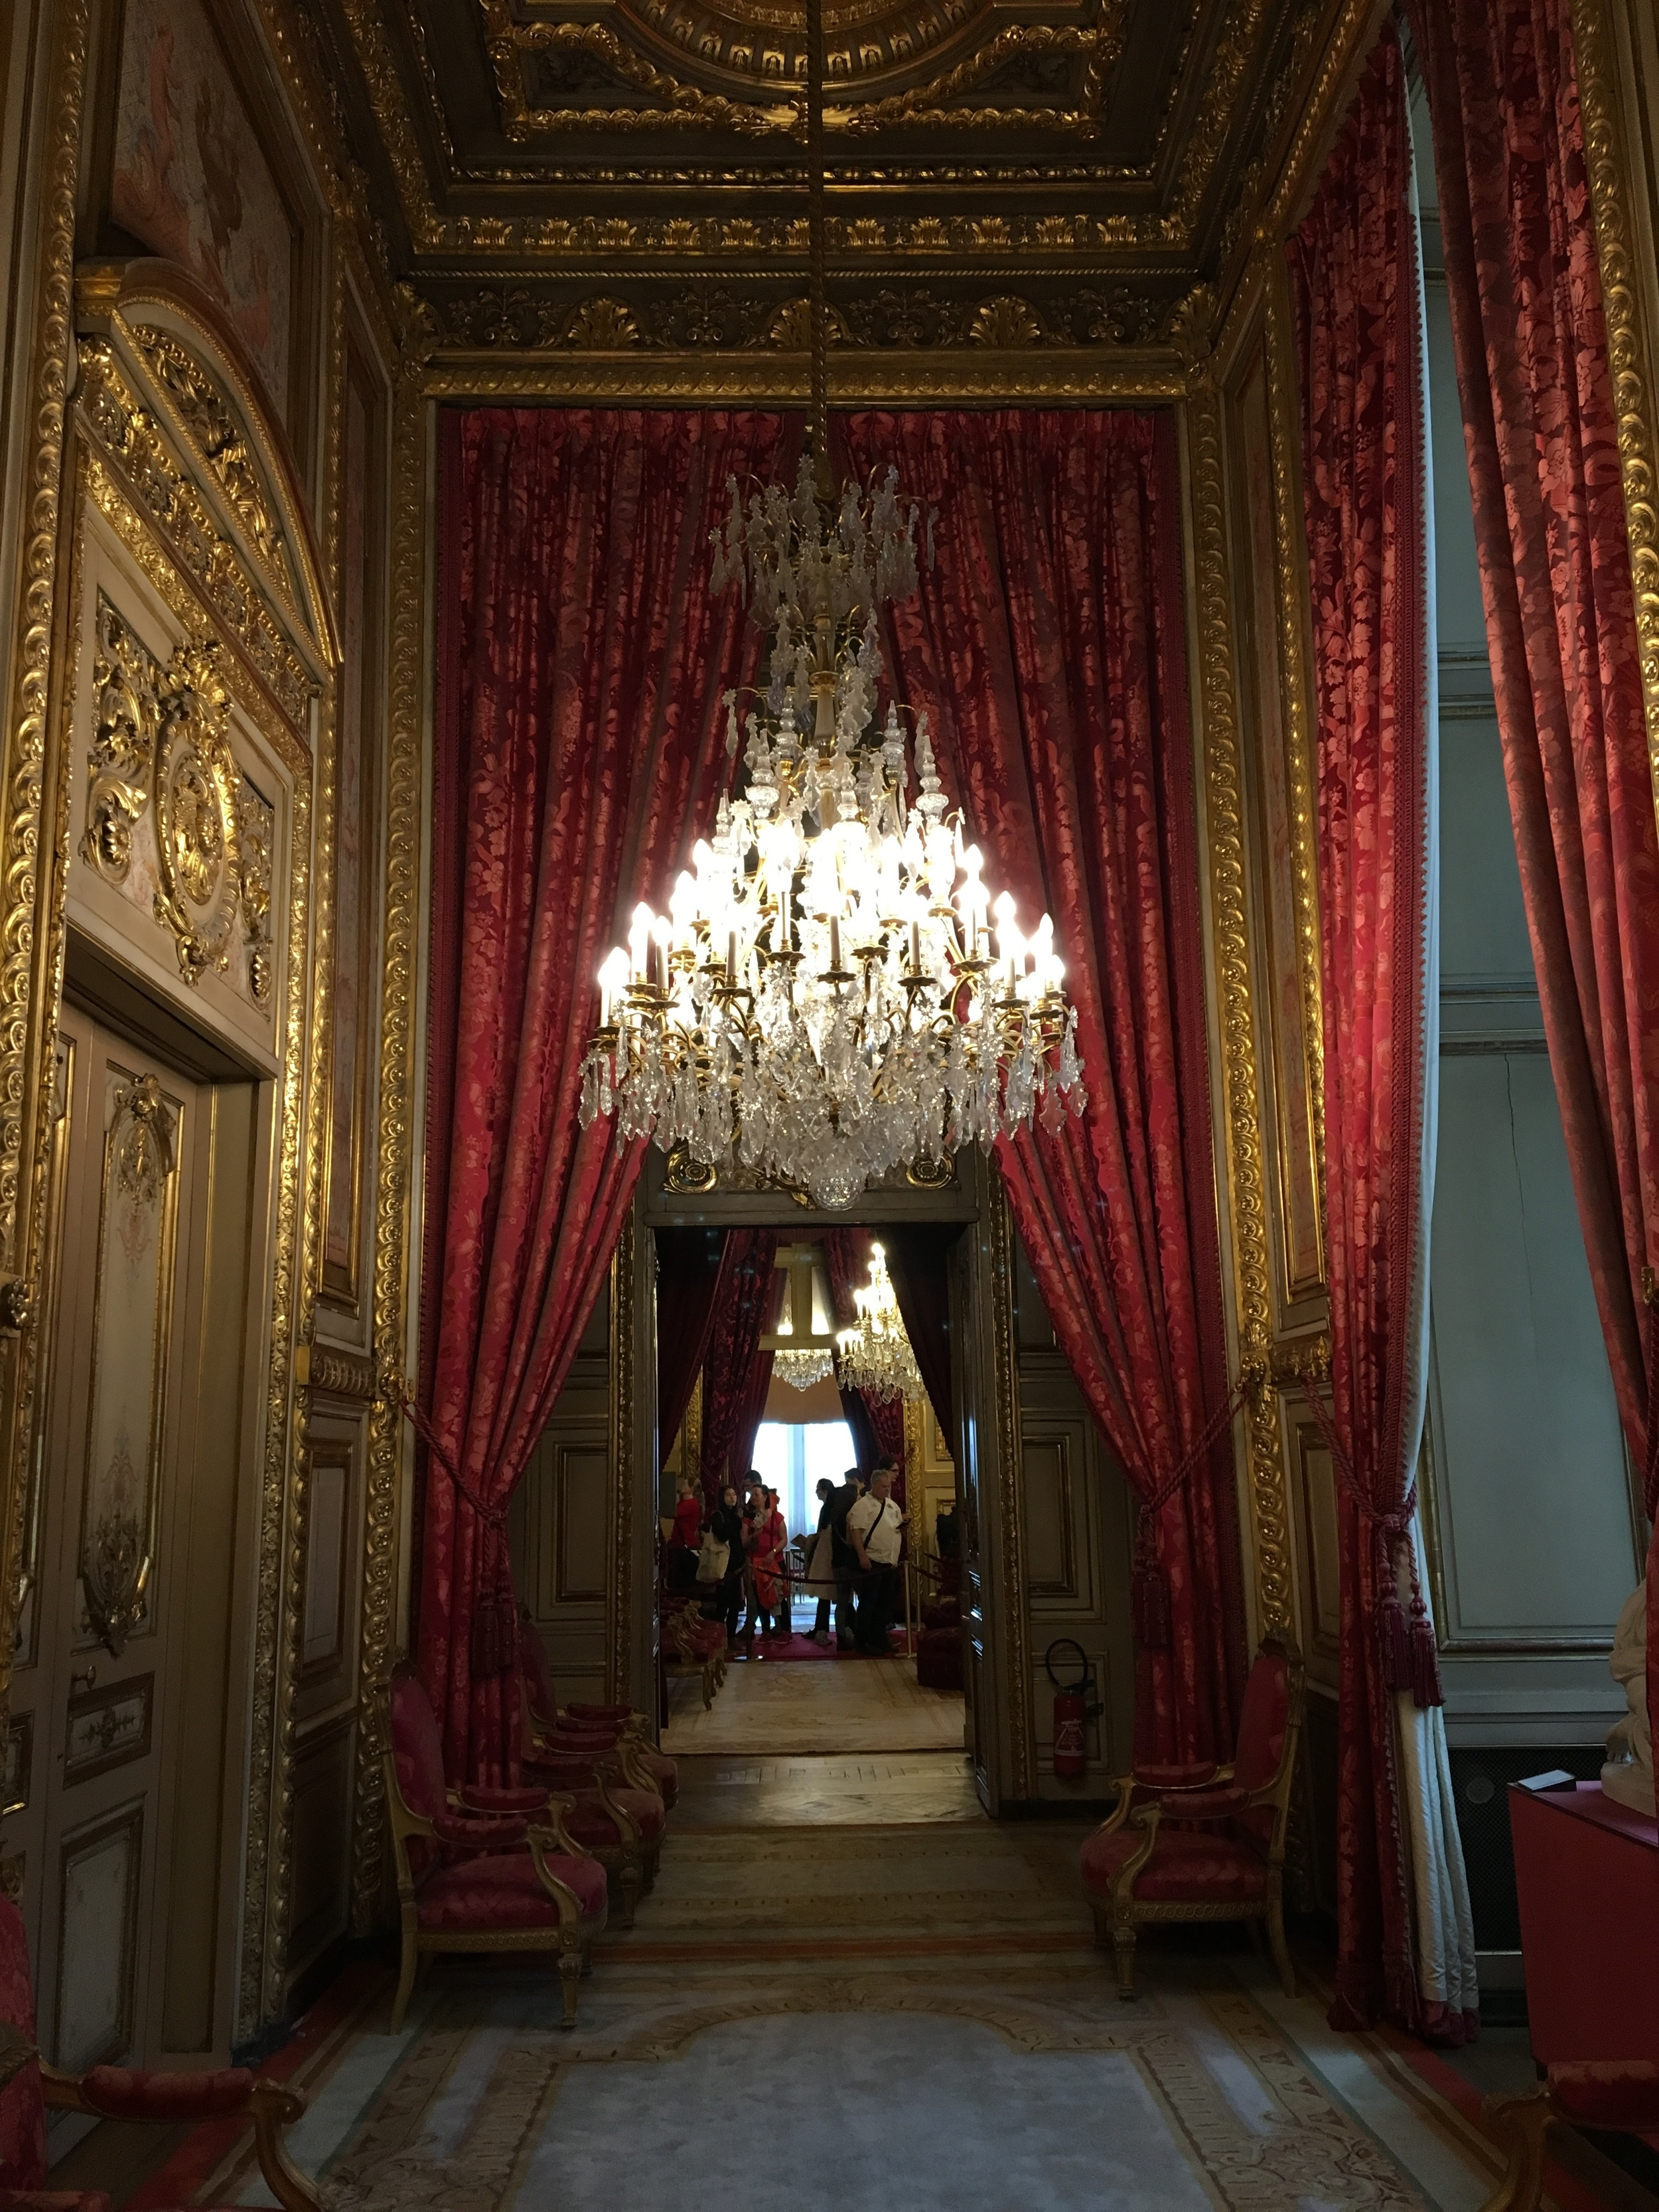 The end of tour we had just enough time to tour the Apartments of Napoleon III, which was a treat for us, because of my daughters interest in the decorative arts!